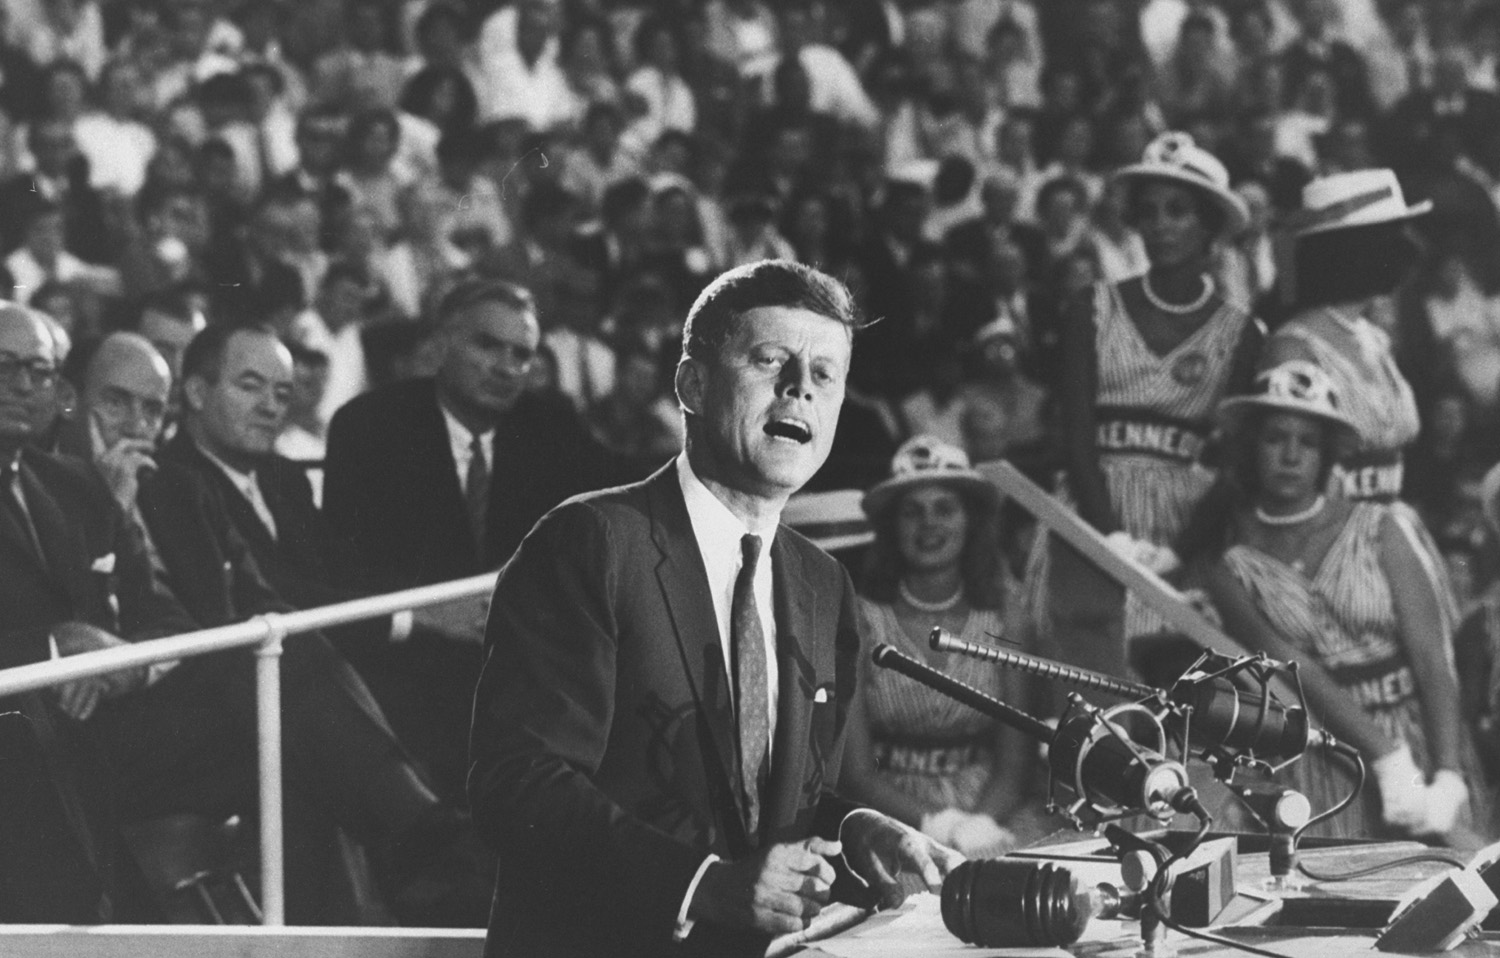 <b>Not originally published in LIFE.</b> Senator John F. Kennedy speaks at the 1960 Democratic National Convention in Los Angeles.